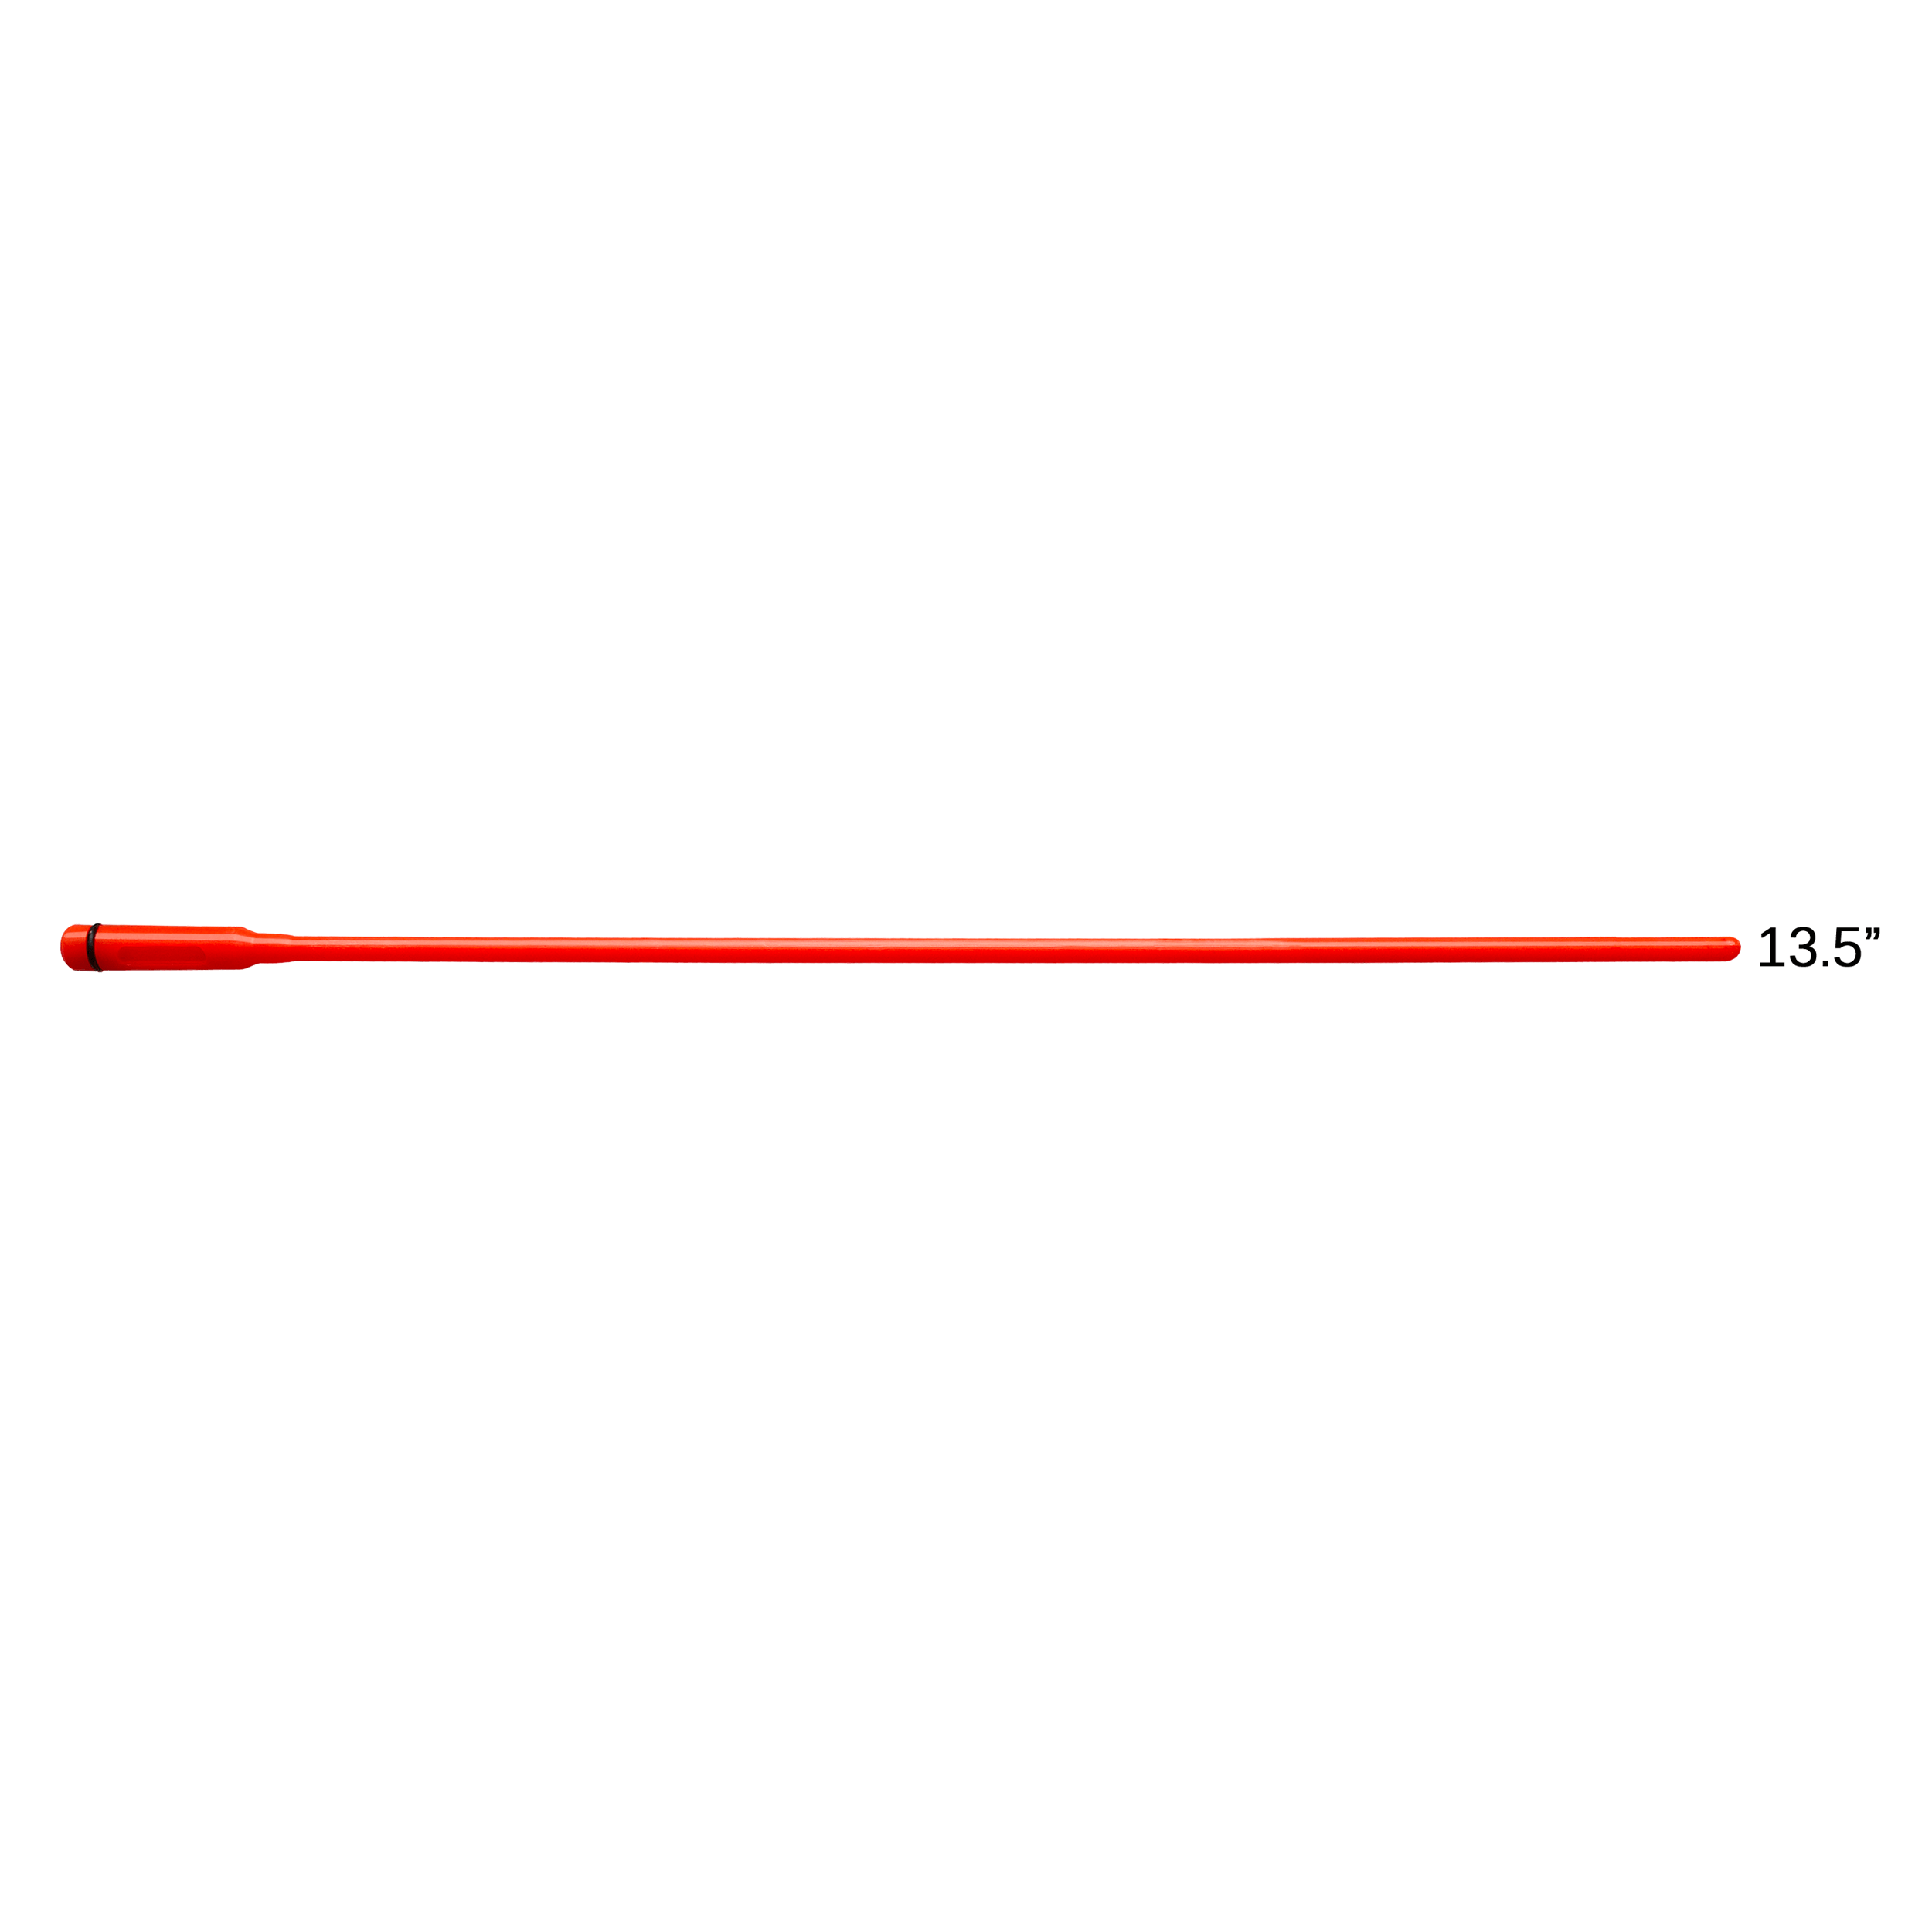 "Safety Rod 5.56 x 45 / .223 REM up to 13.5"" / 340mm length ( commando )"